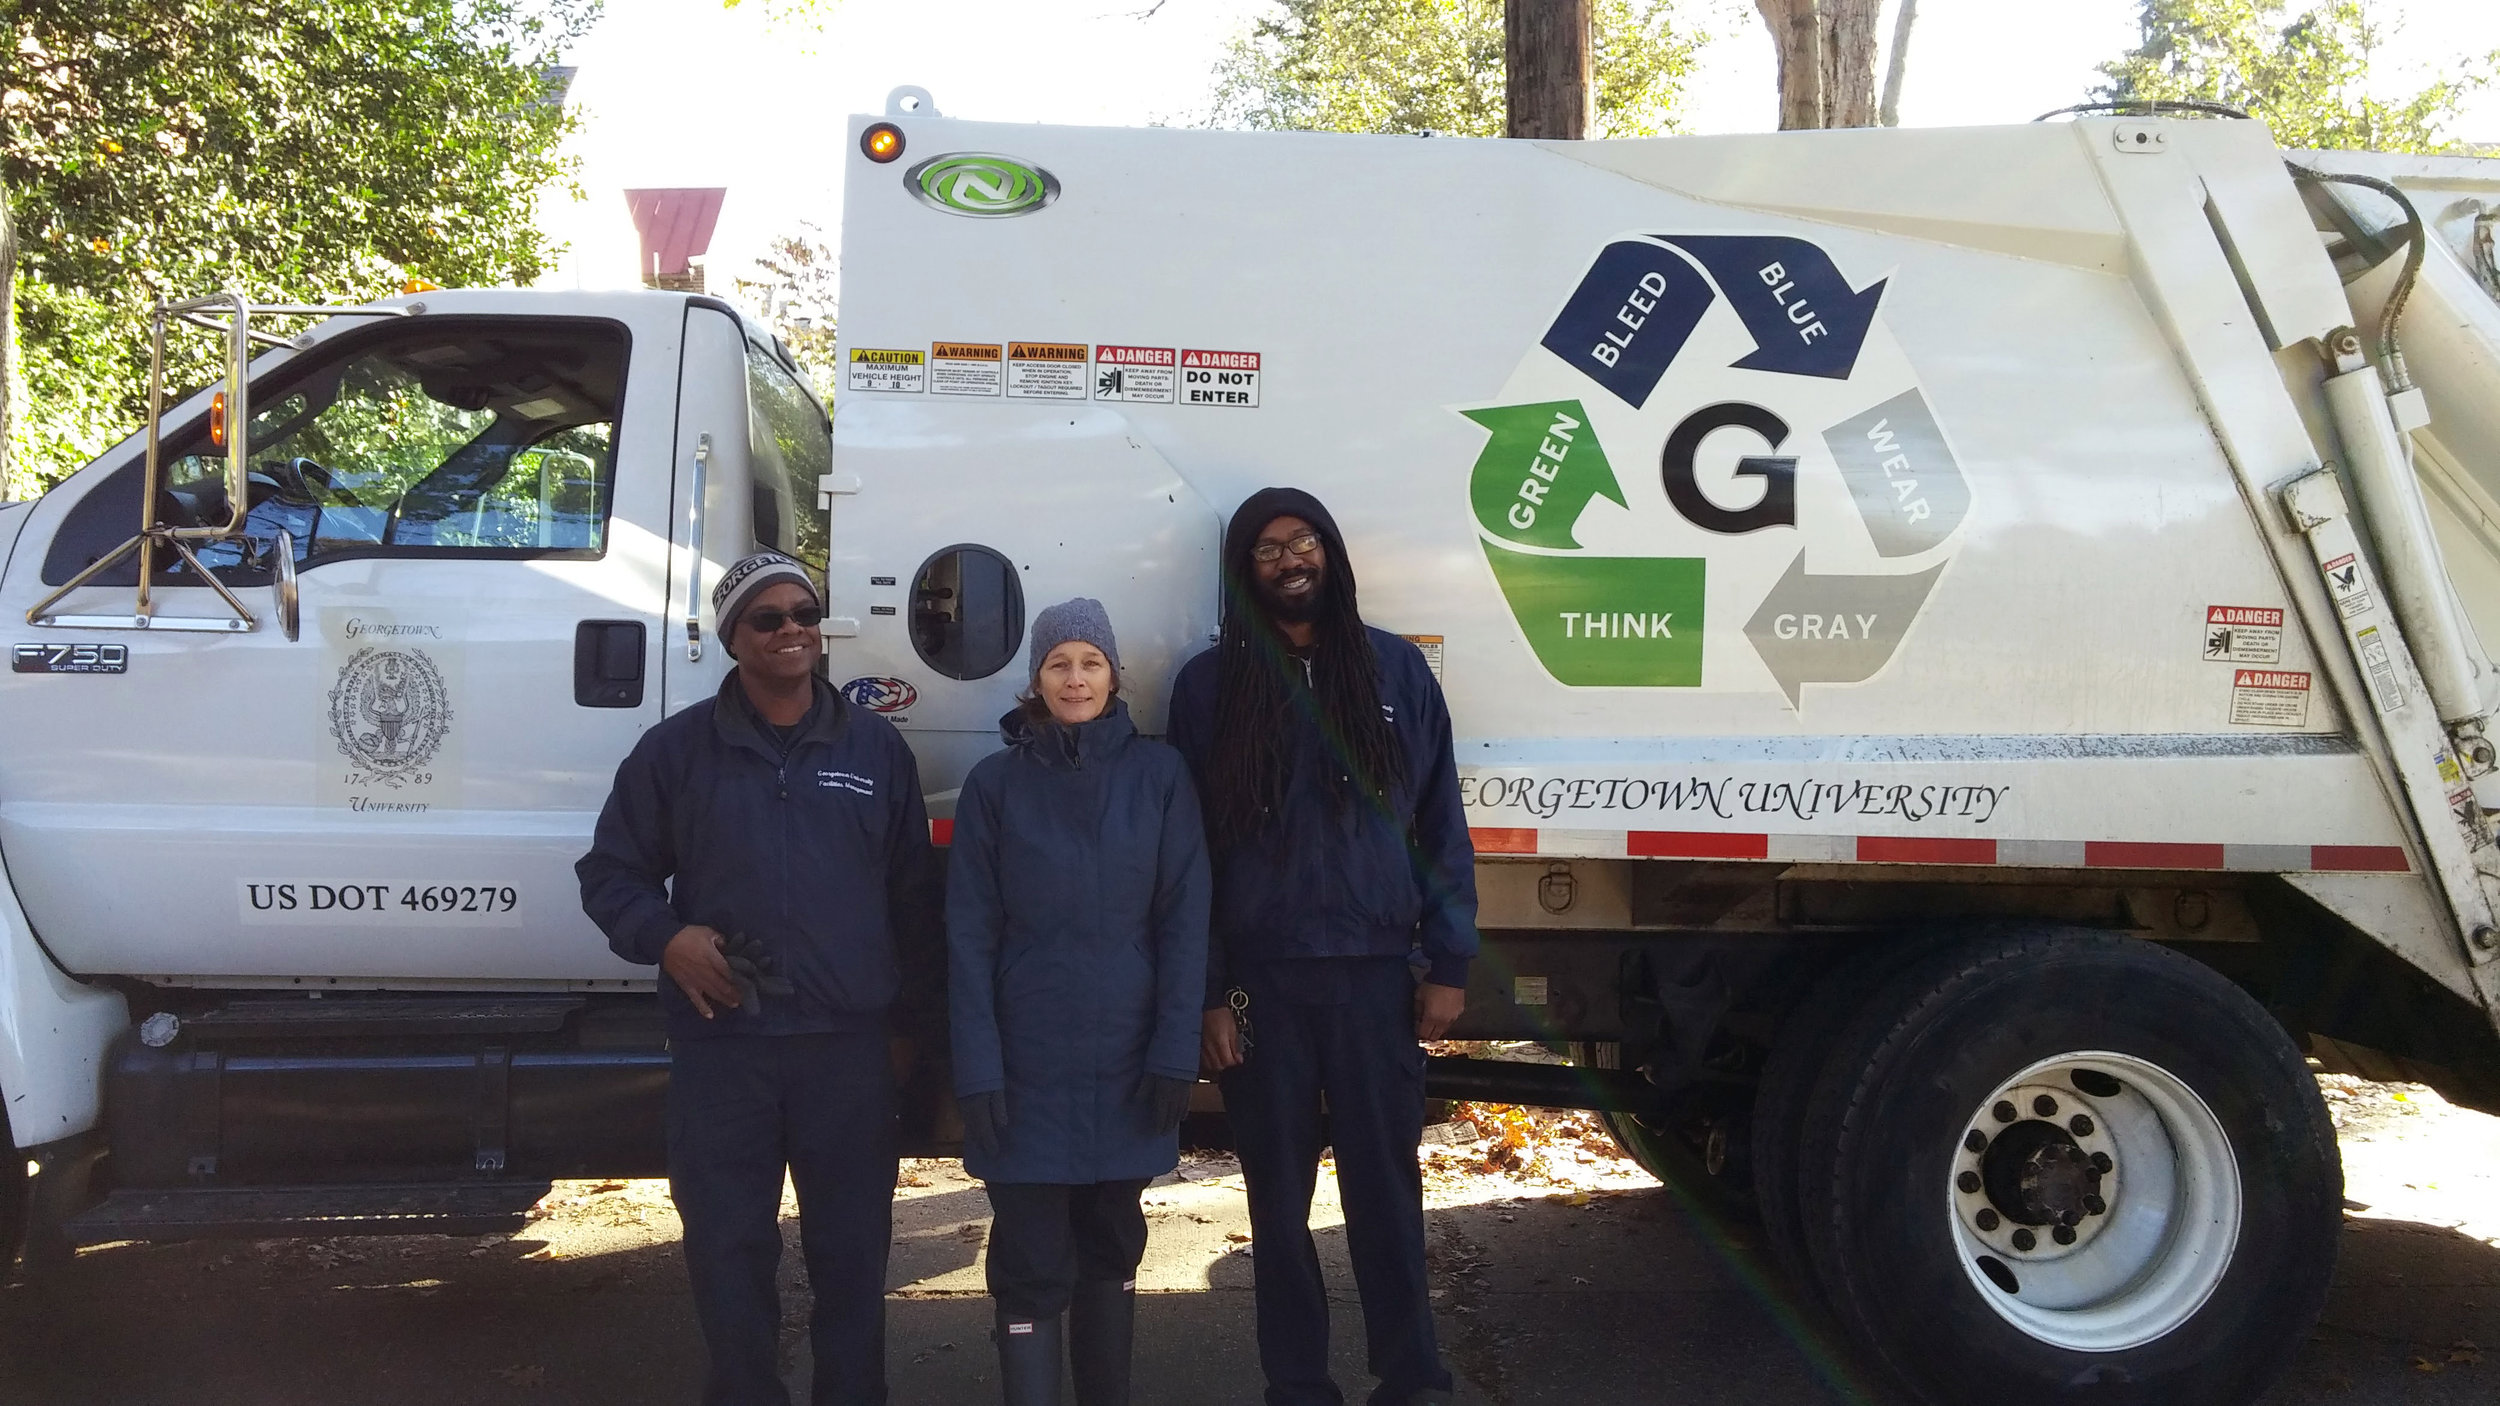 A good amount of bulk waste was collected with the help of GU employees and trash trucks.